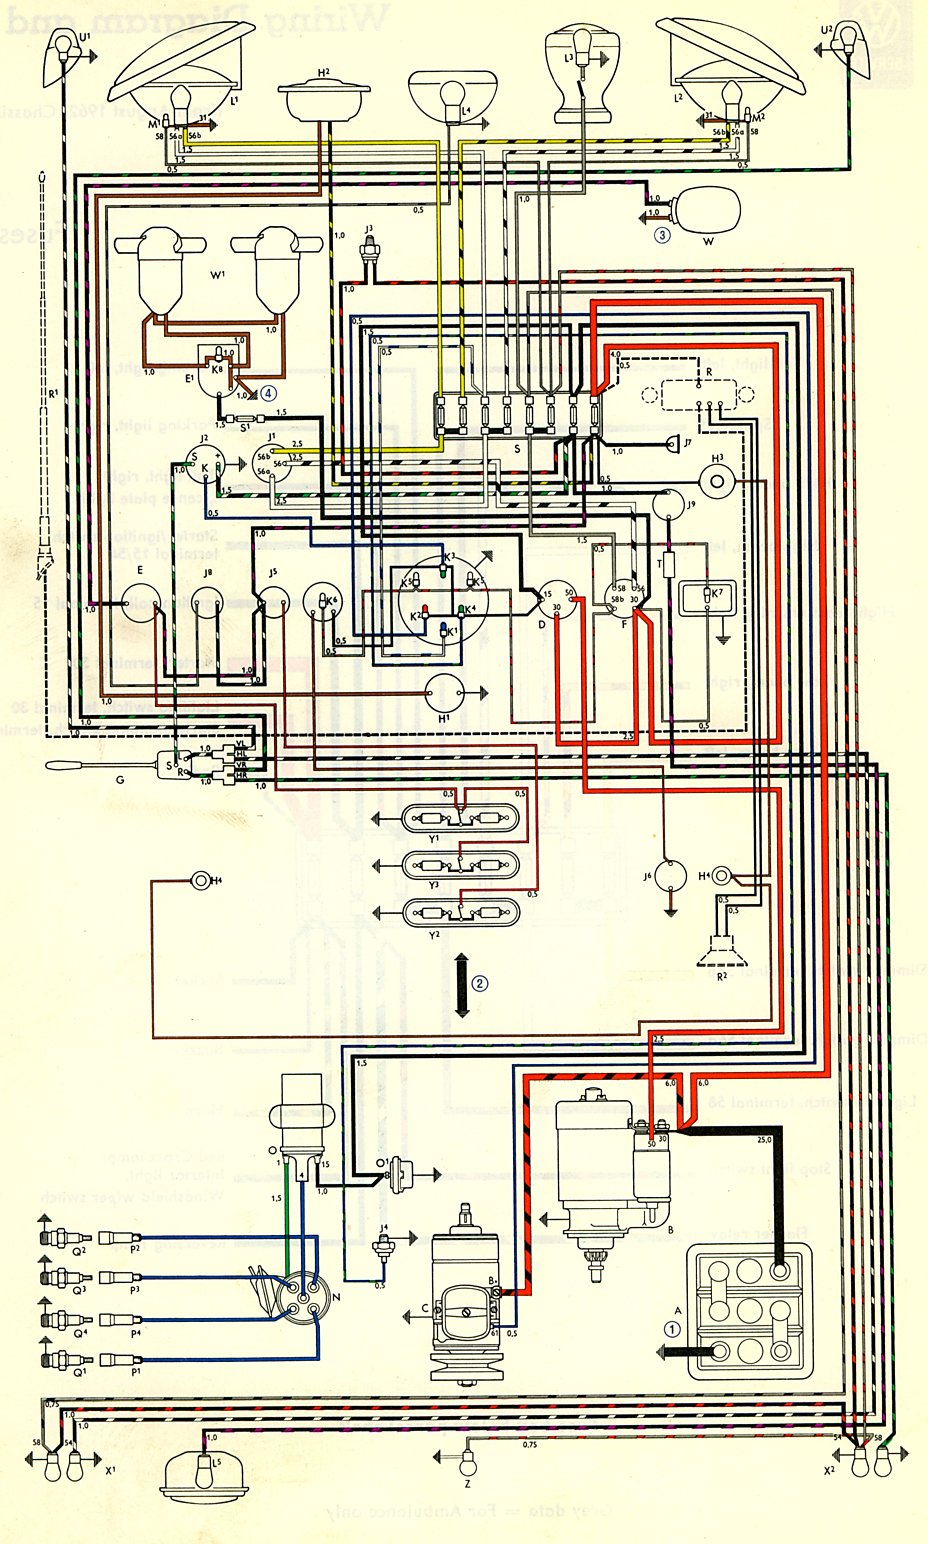 bus_63 1963 bus wiring diagram thegoldenbug com 74 vw bus wiring diagram at nearapp.co